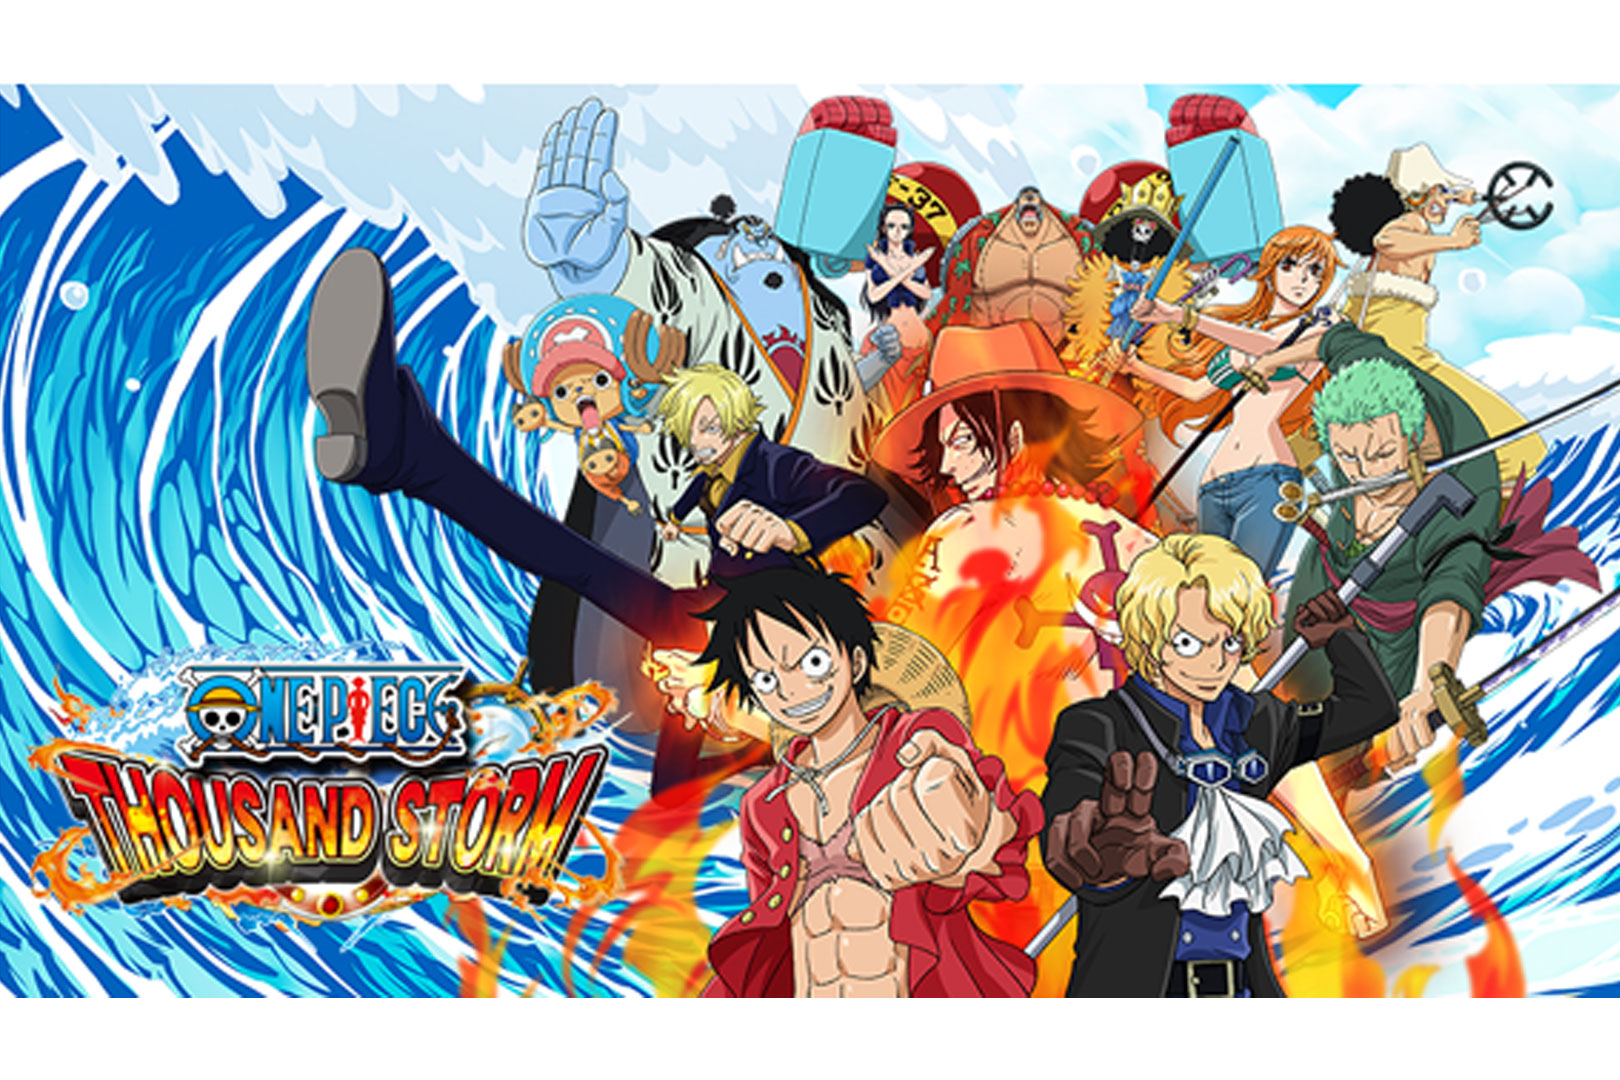 New One Piece mobile game announced!